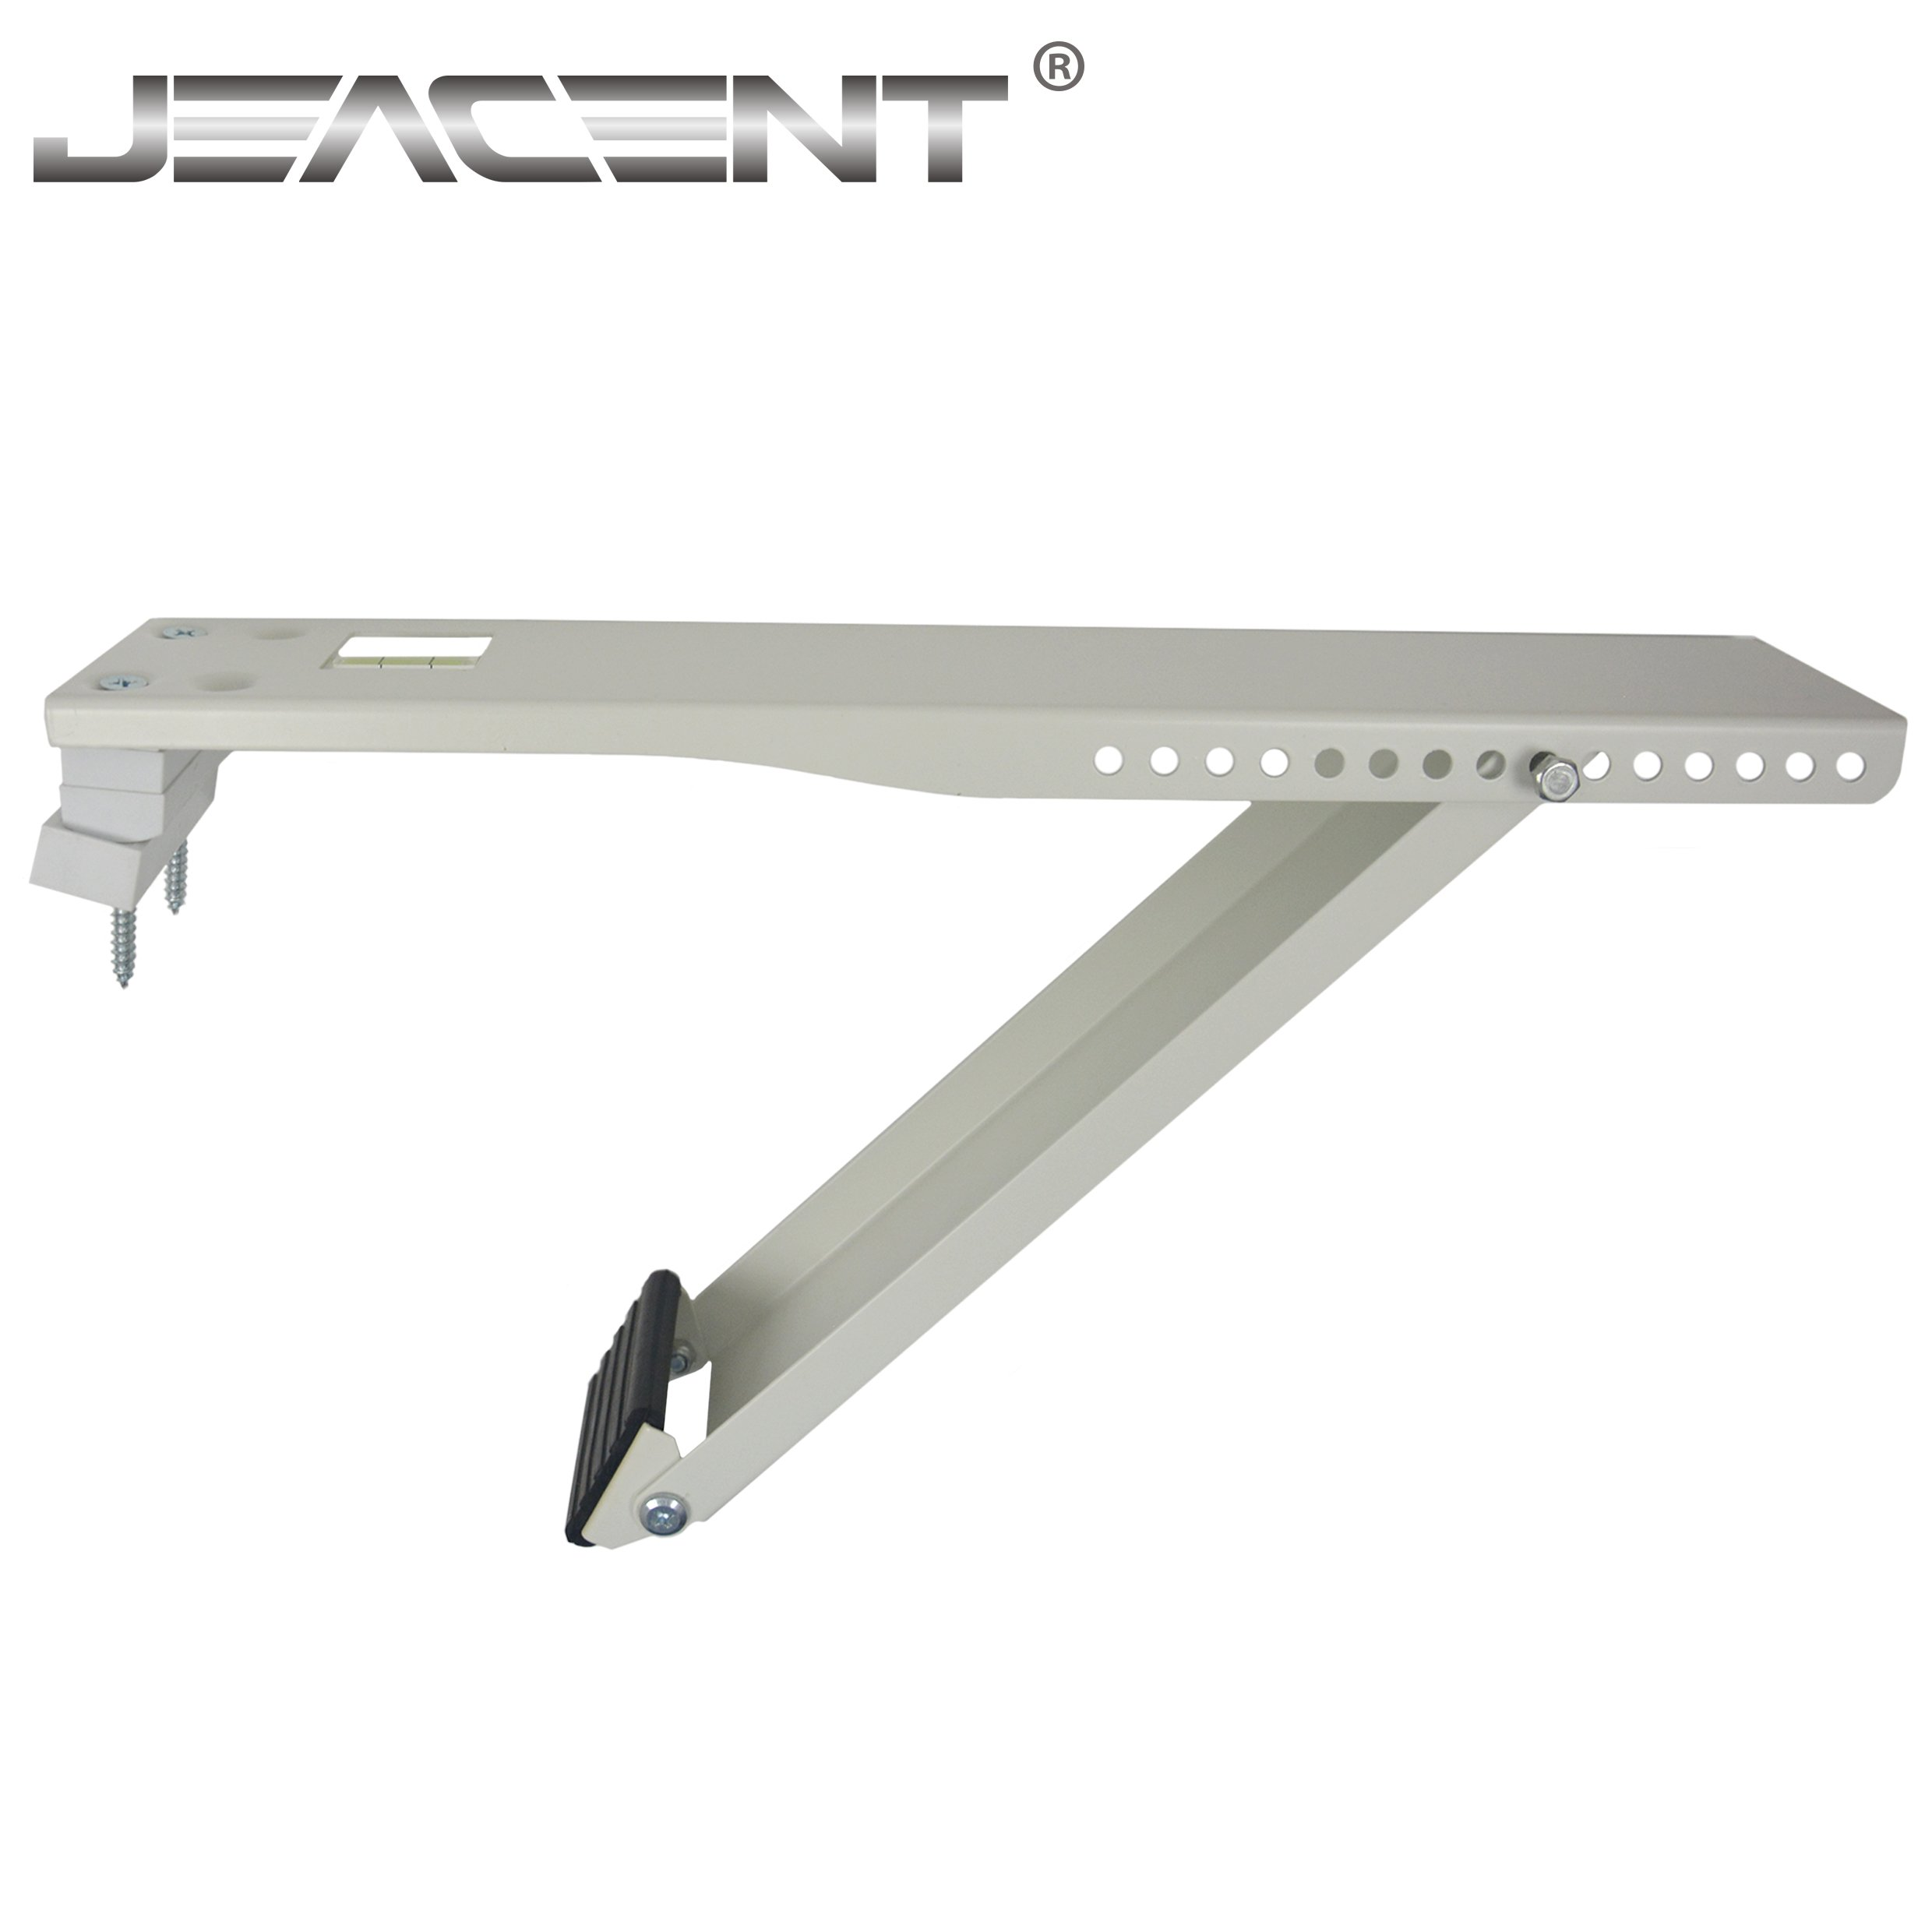 Jeacent Universal AC Window Air Conditioner Support Bracket Light Duty, Up to 85 lbs by Jeacent (Image #5)